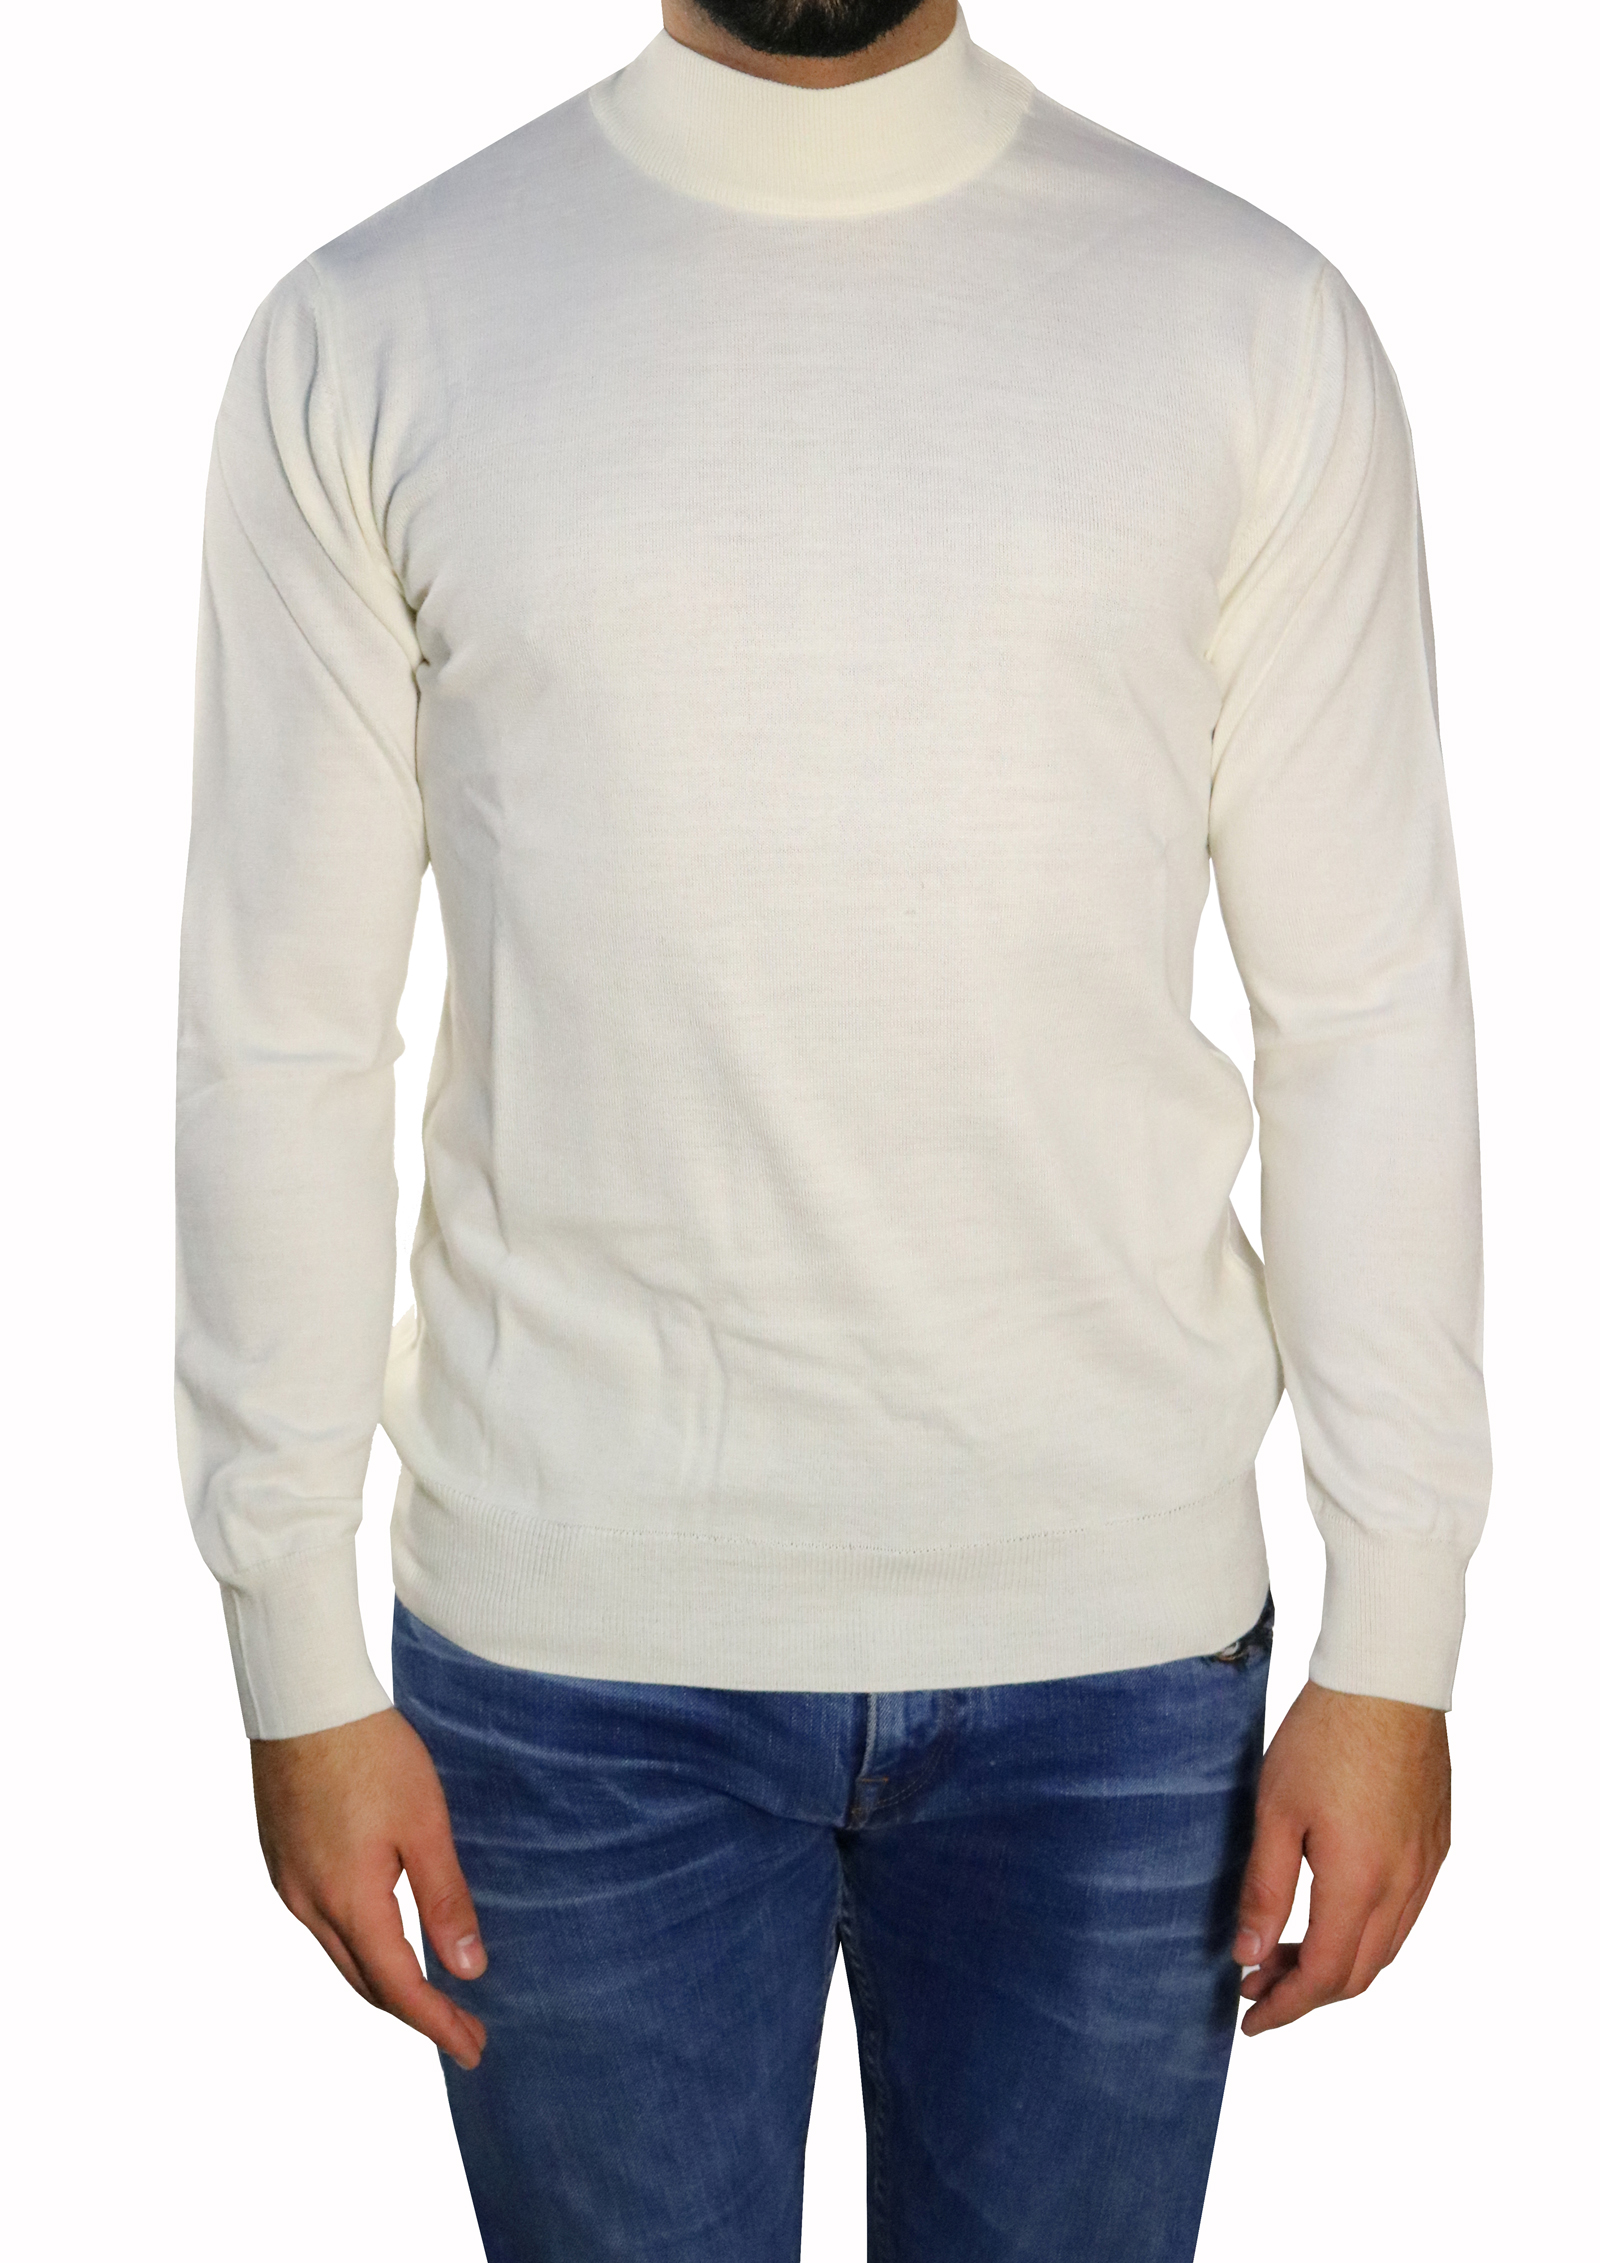 info for 07e2a 98f91 Muga mens turtleneck jumper*046*